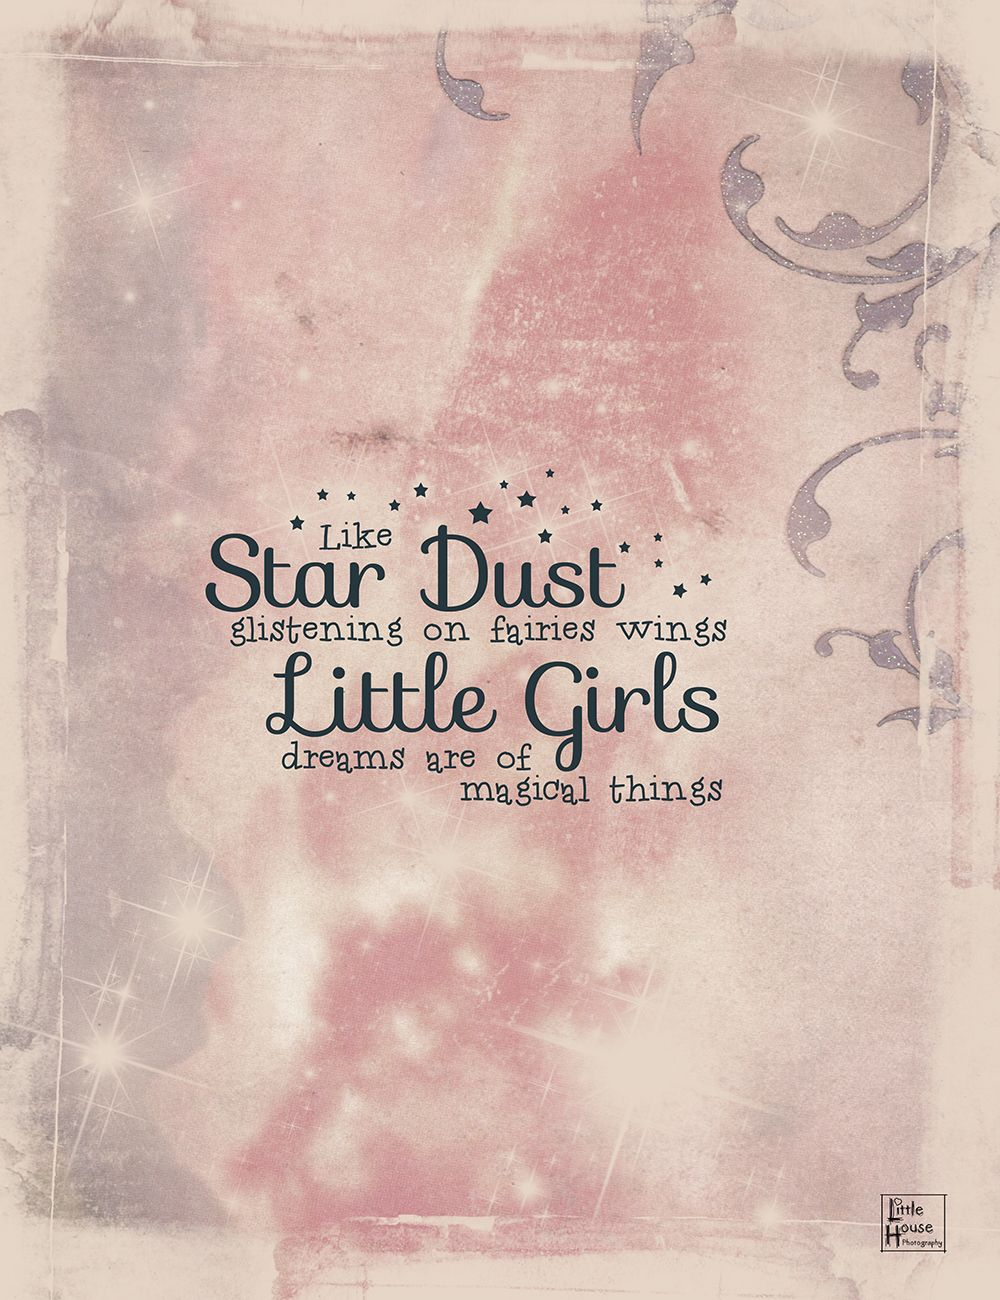 Baby Girl Quotes Short : quotes, short, Little, Quotes,, House, Photography, Quotes